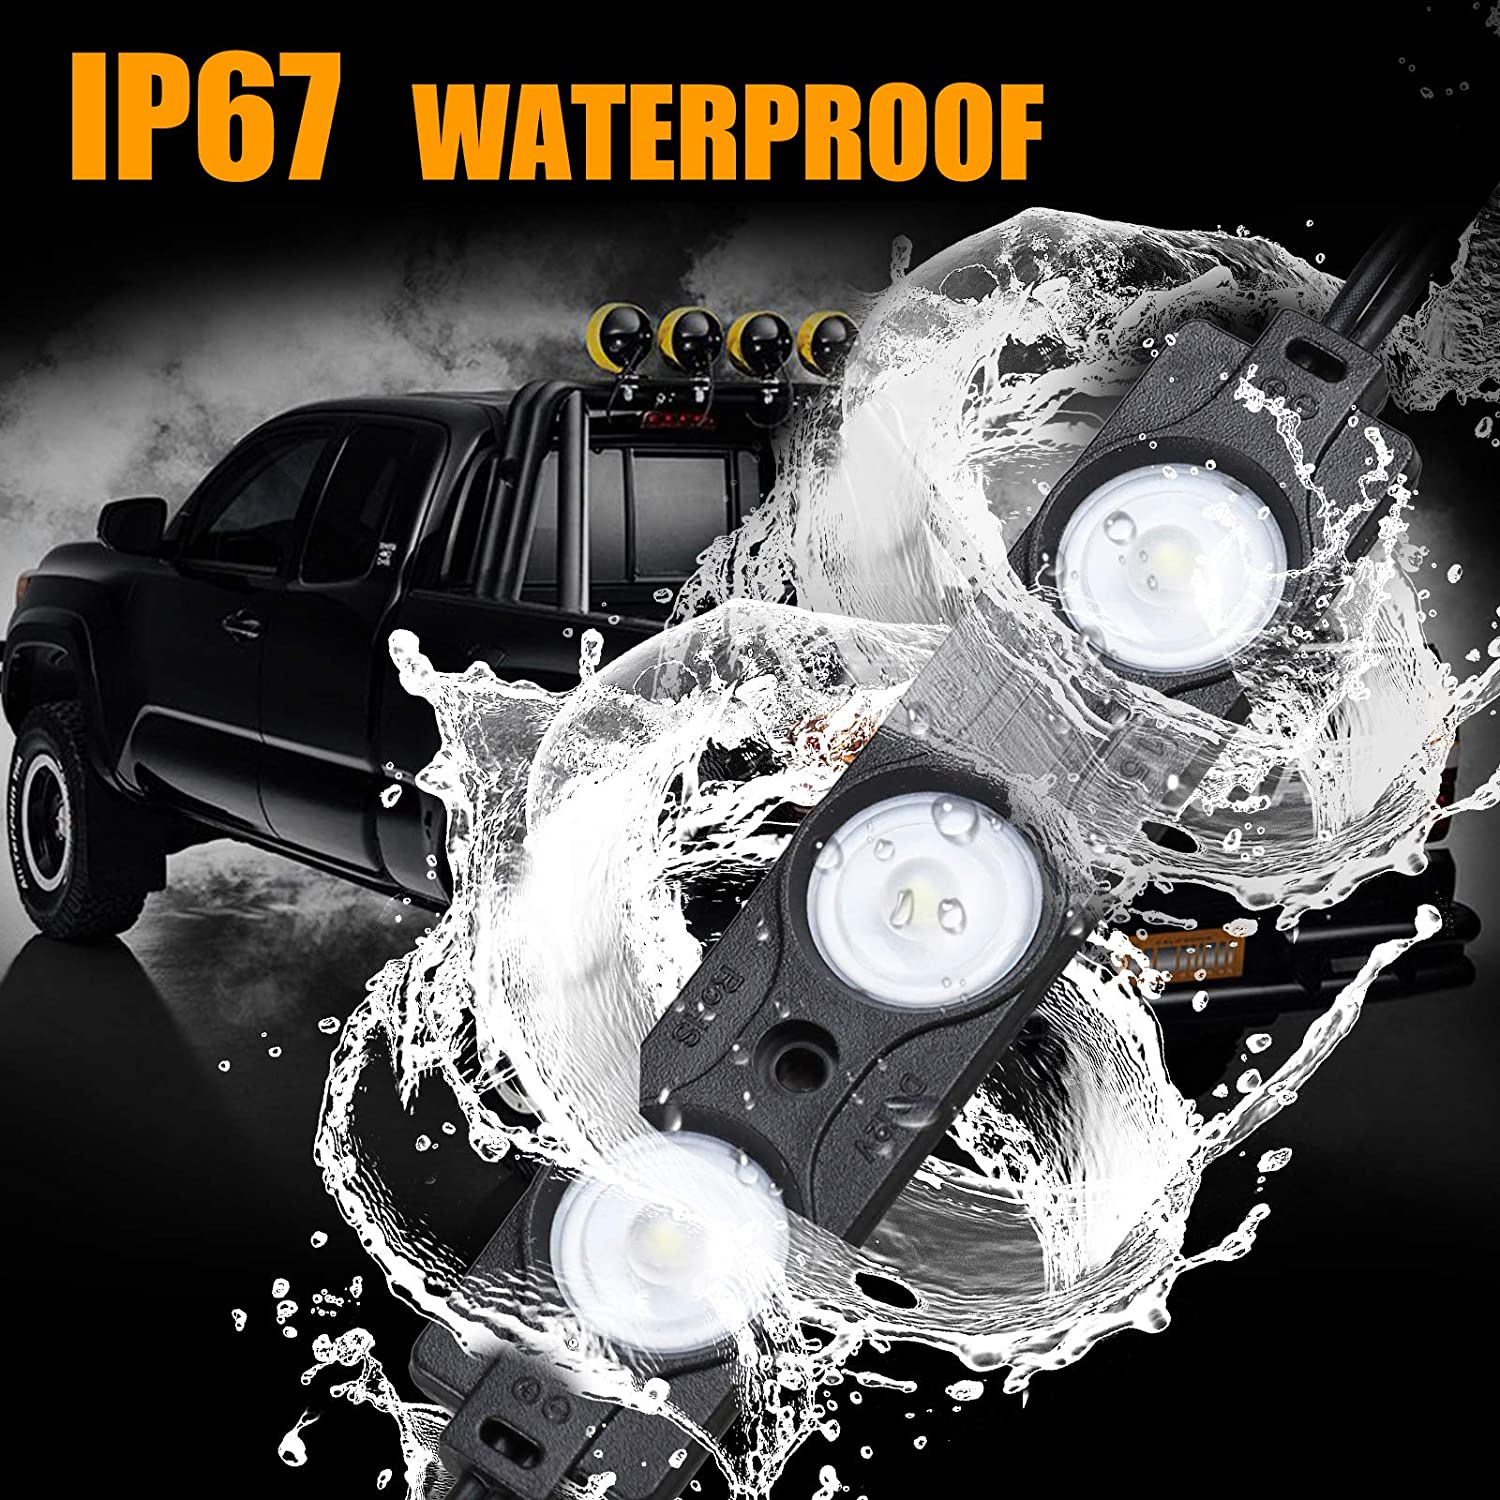 8PCS Kit di Illuminazione a LED per Camion Letto 24 Kit di Illuminazione a Roccia Impermeabile a 24 LED per Camion Pickup off Road sotto i Piedi del Veicolo Car Rail Van Trailer Cargo White Light